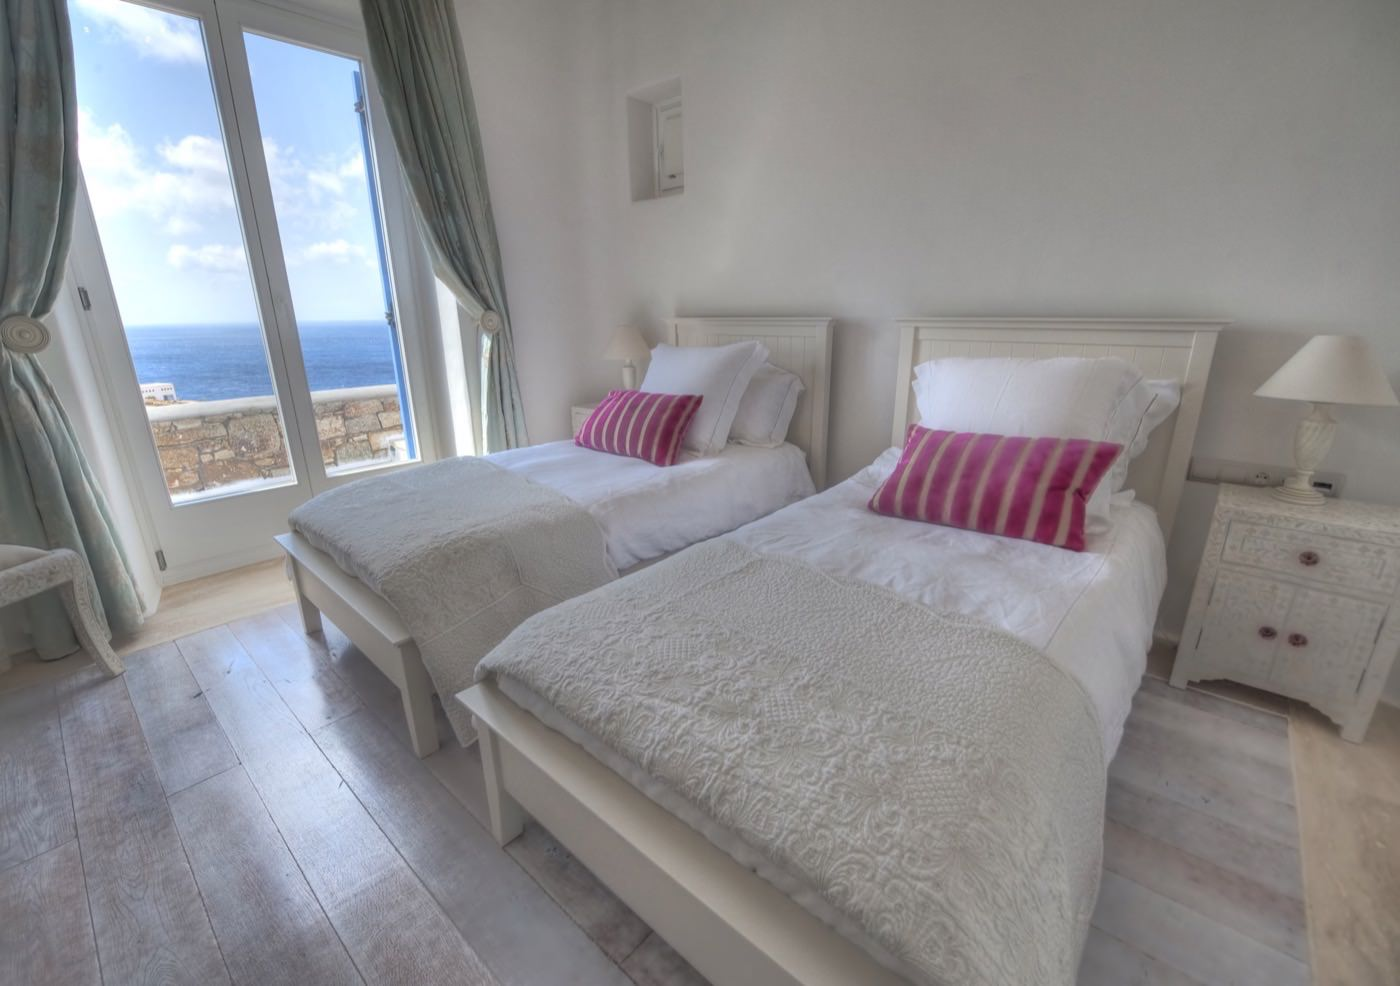 Luxury hotel of Karma Pelikanos Accommodation white and fluffy bedroom